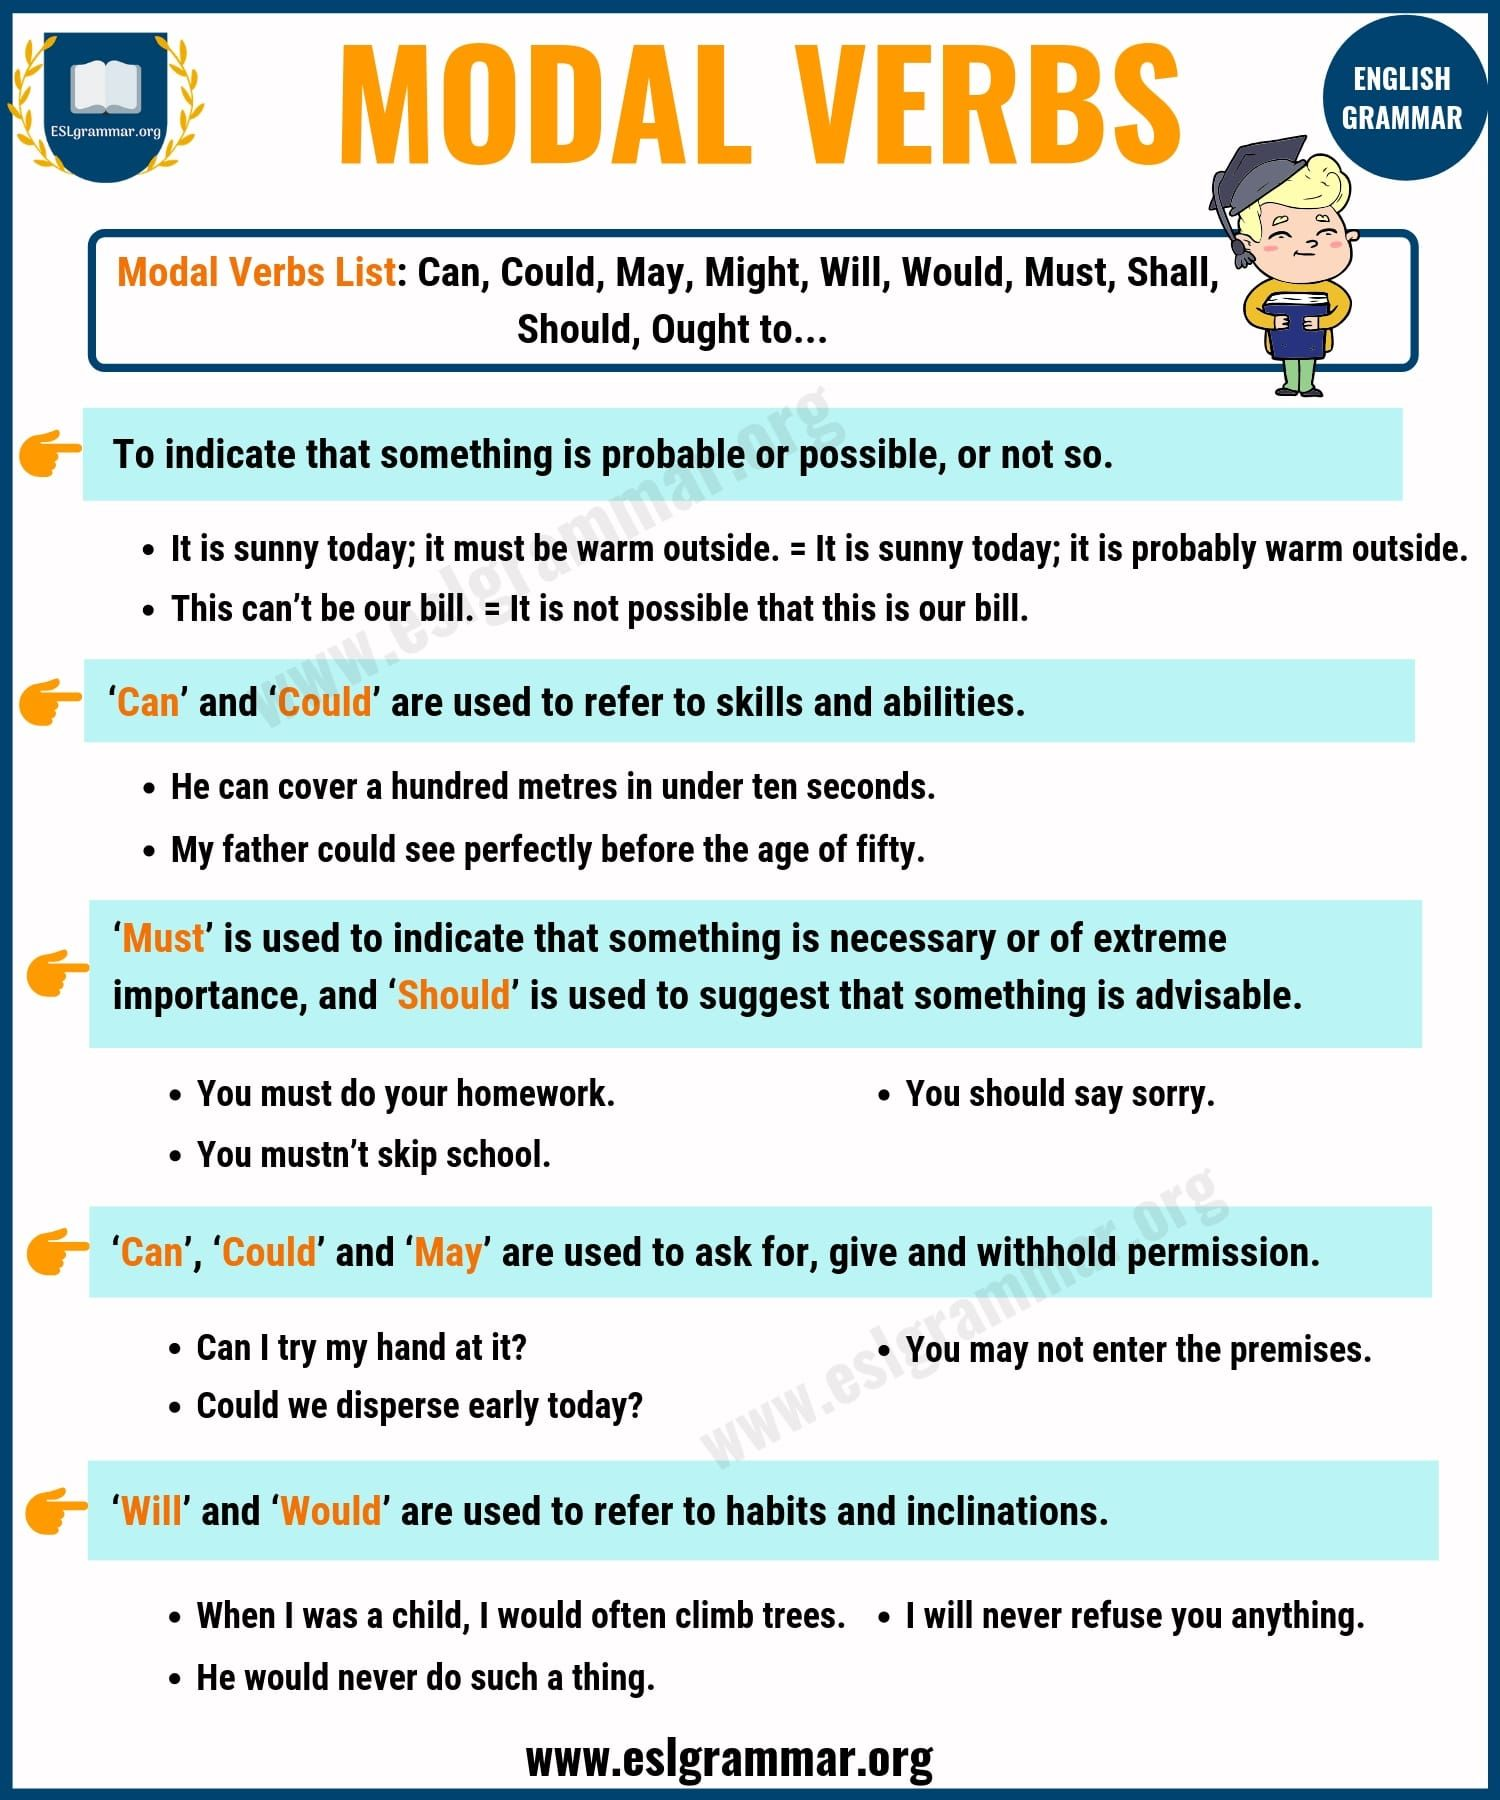 Modal Verbs Useful Rules List And Examples In English Esl Grammar Types Of Verbs English Verbs Verb [ 1800 x 1500 Pixel ]